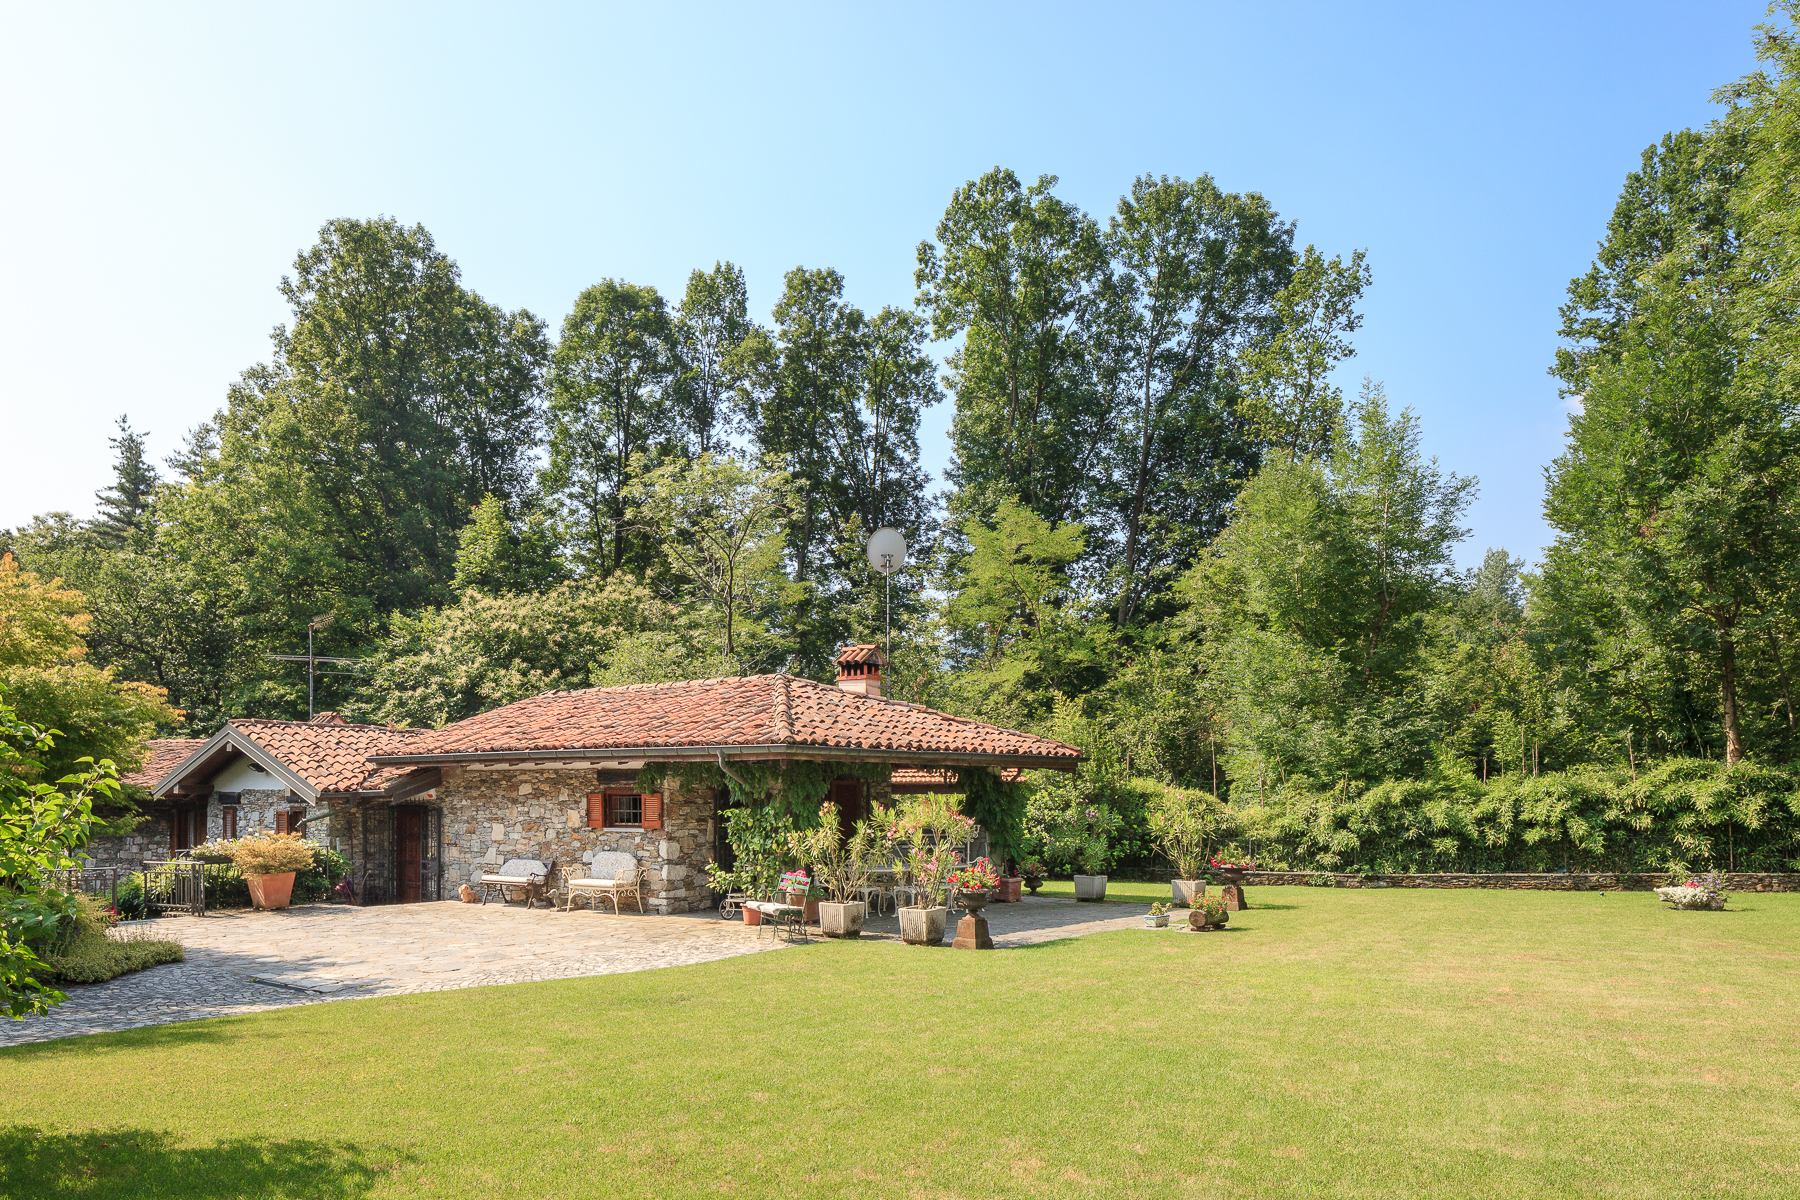 Additional photo for property listing at An Anglo-Saxon cottage nestled in a green oasis Via dei Mulini Other Verbano Cusio Ossola, Verbano Cusio Ossola 28833 Italia